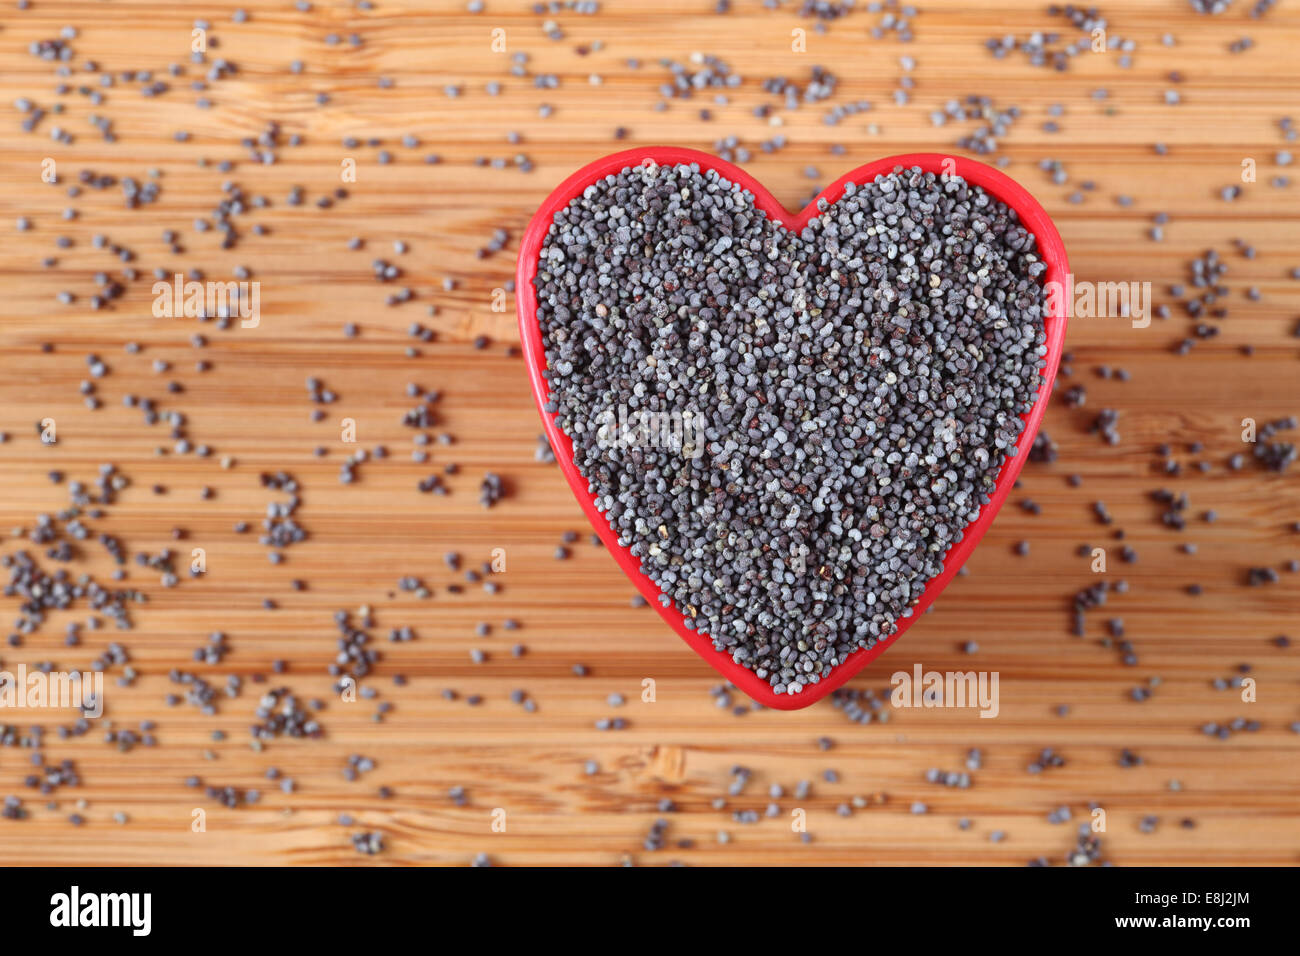 Poppy seeds in a heart bowl. Close-up. - Stock Image